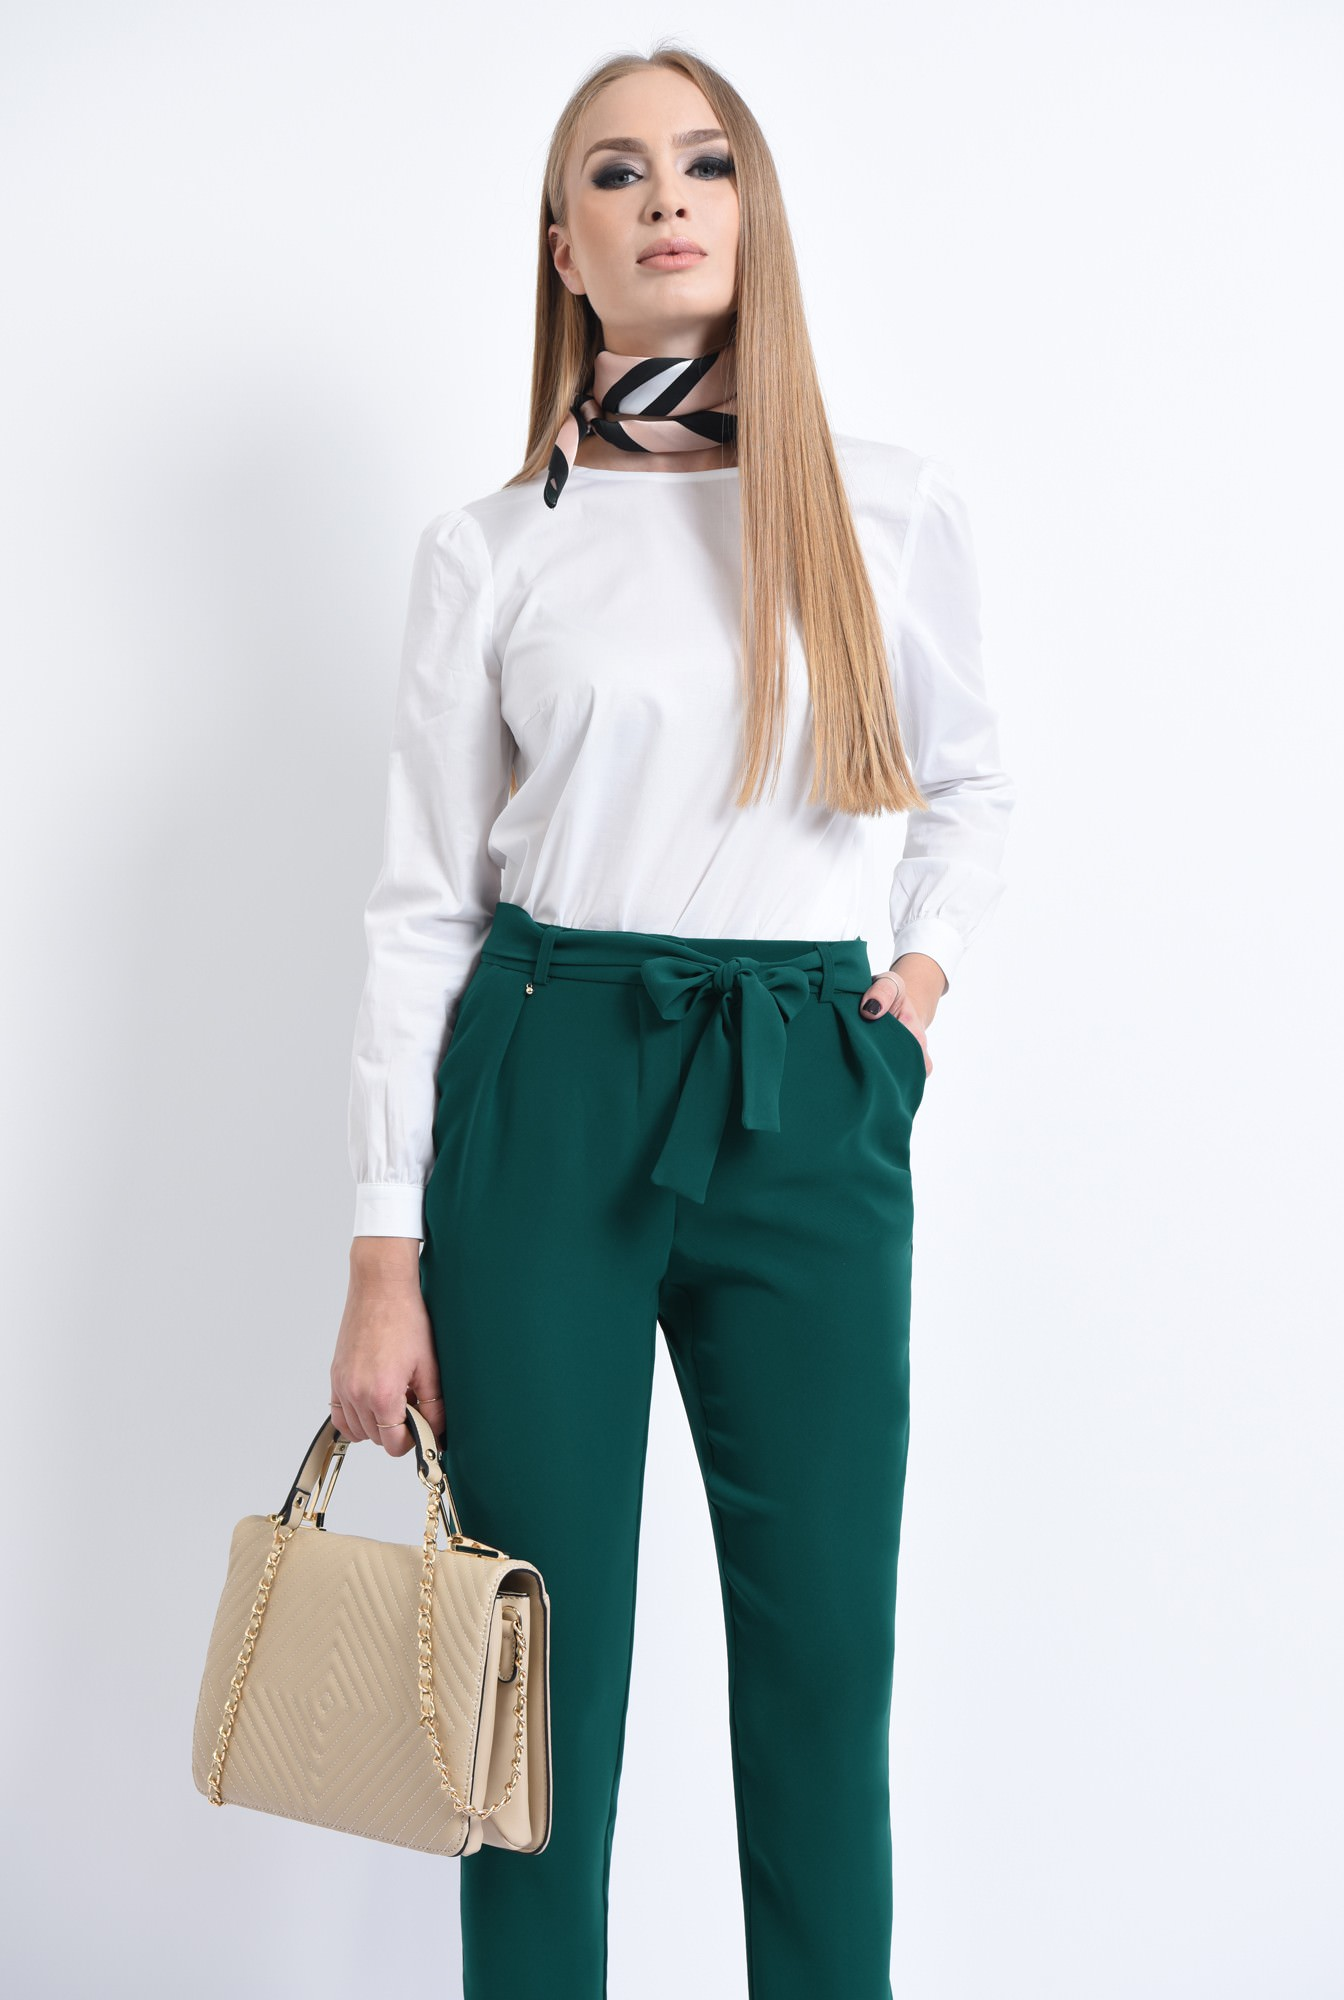 0 - PANTALON OFFICE PT 172-VERDE